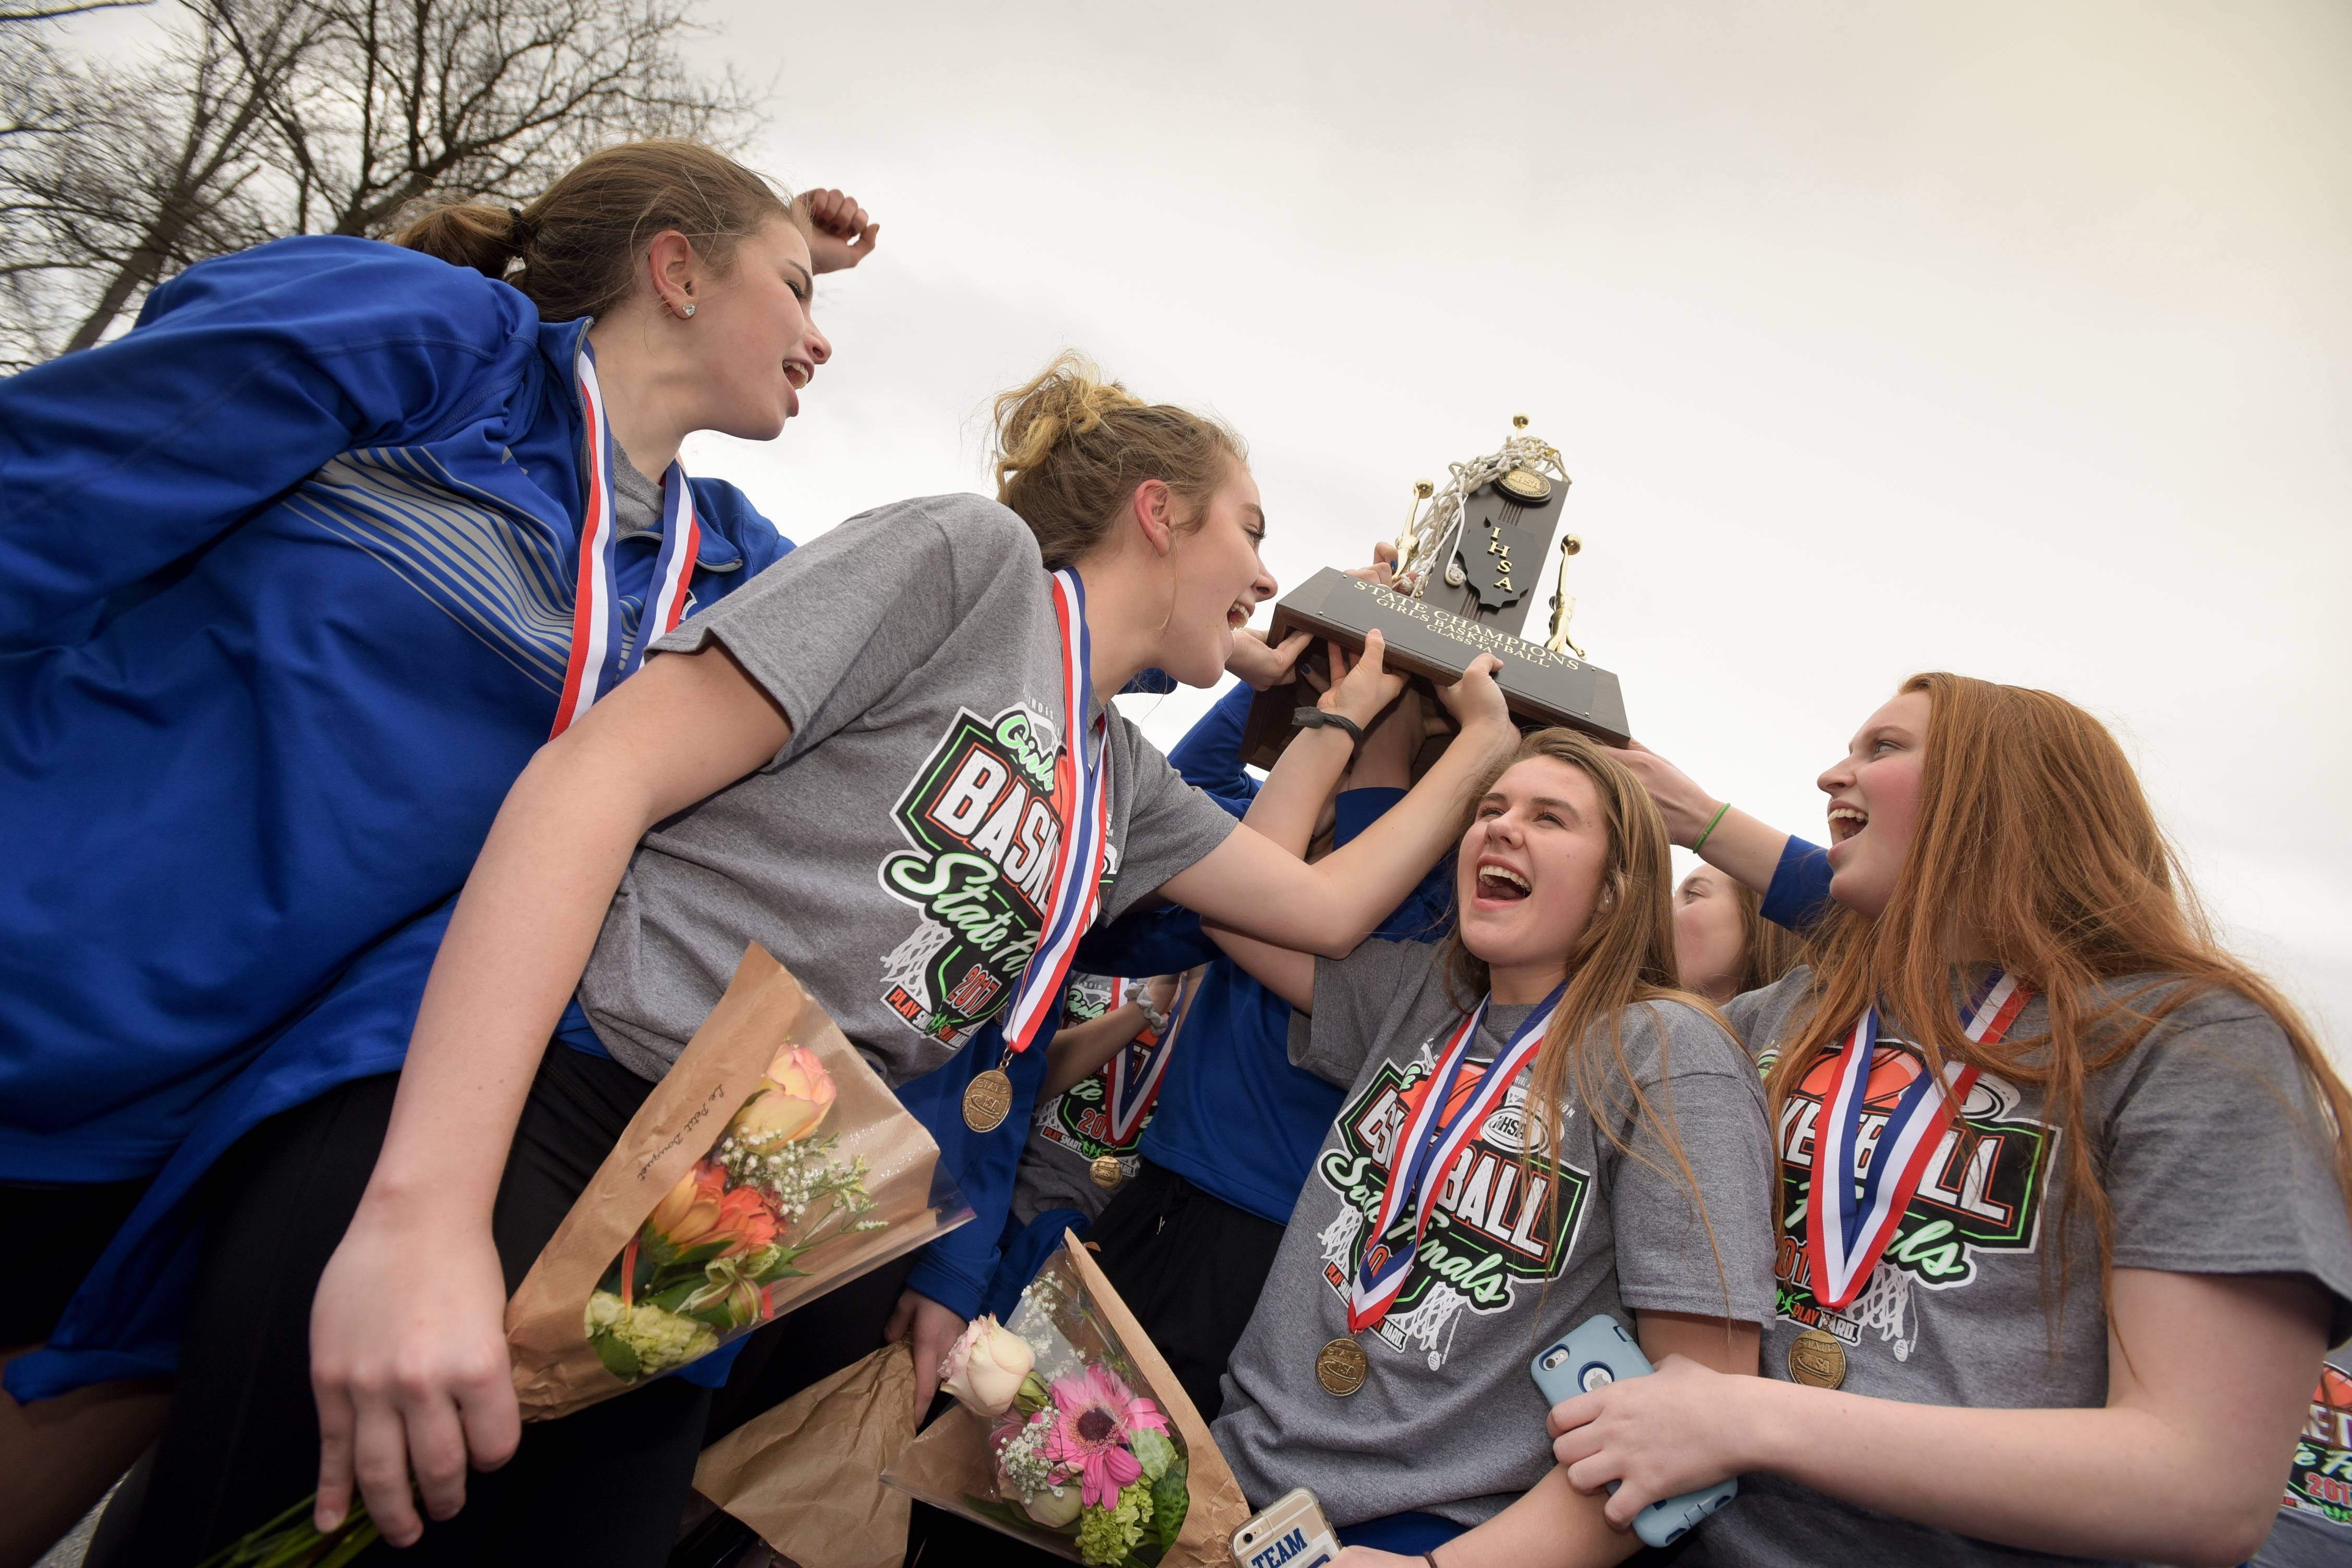 Geneva High School girls basketball team celebrates with their championship trophy after winning the state championship on Saturday.